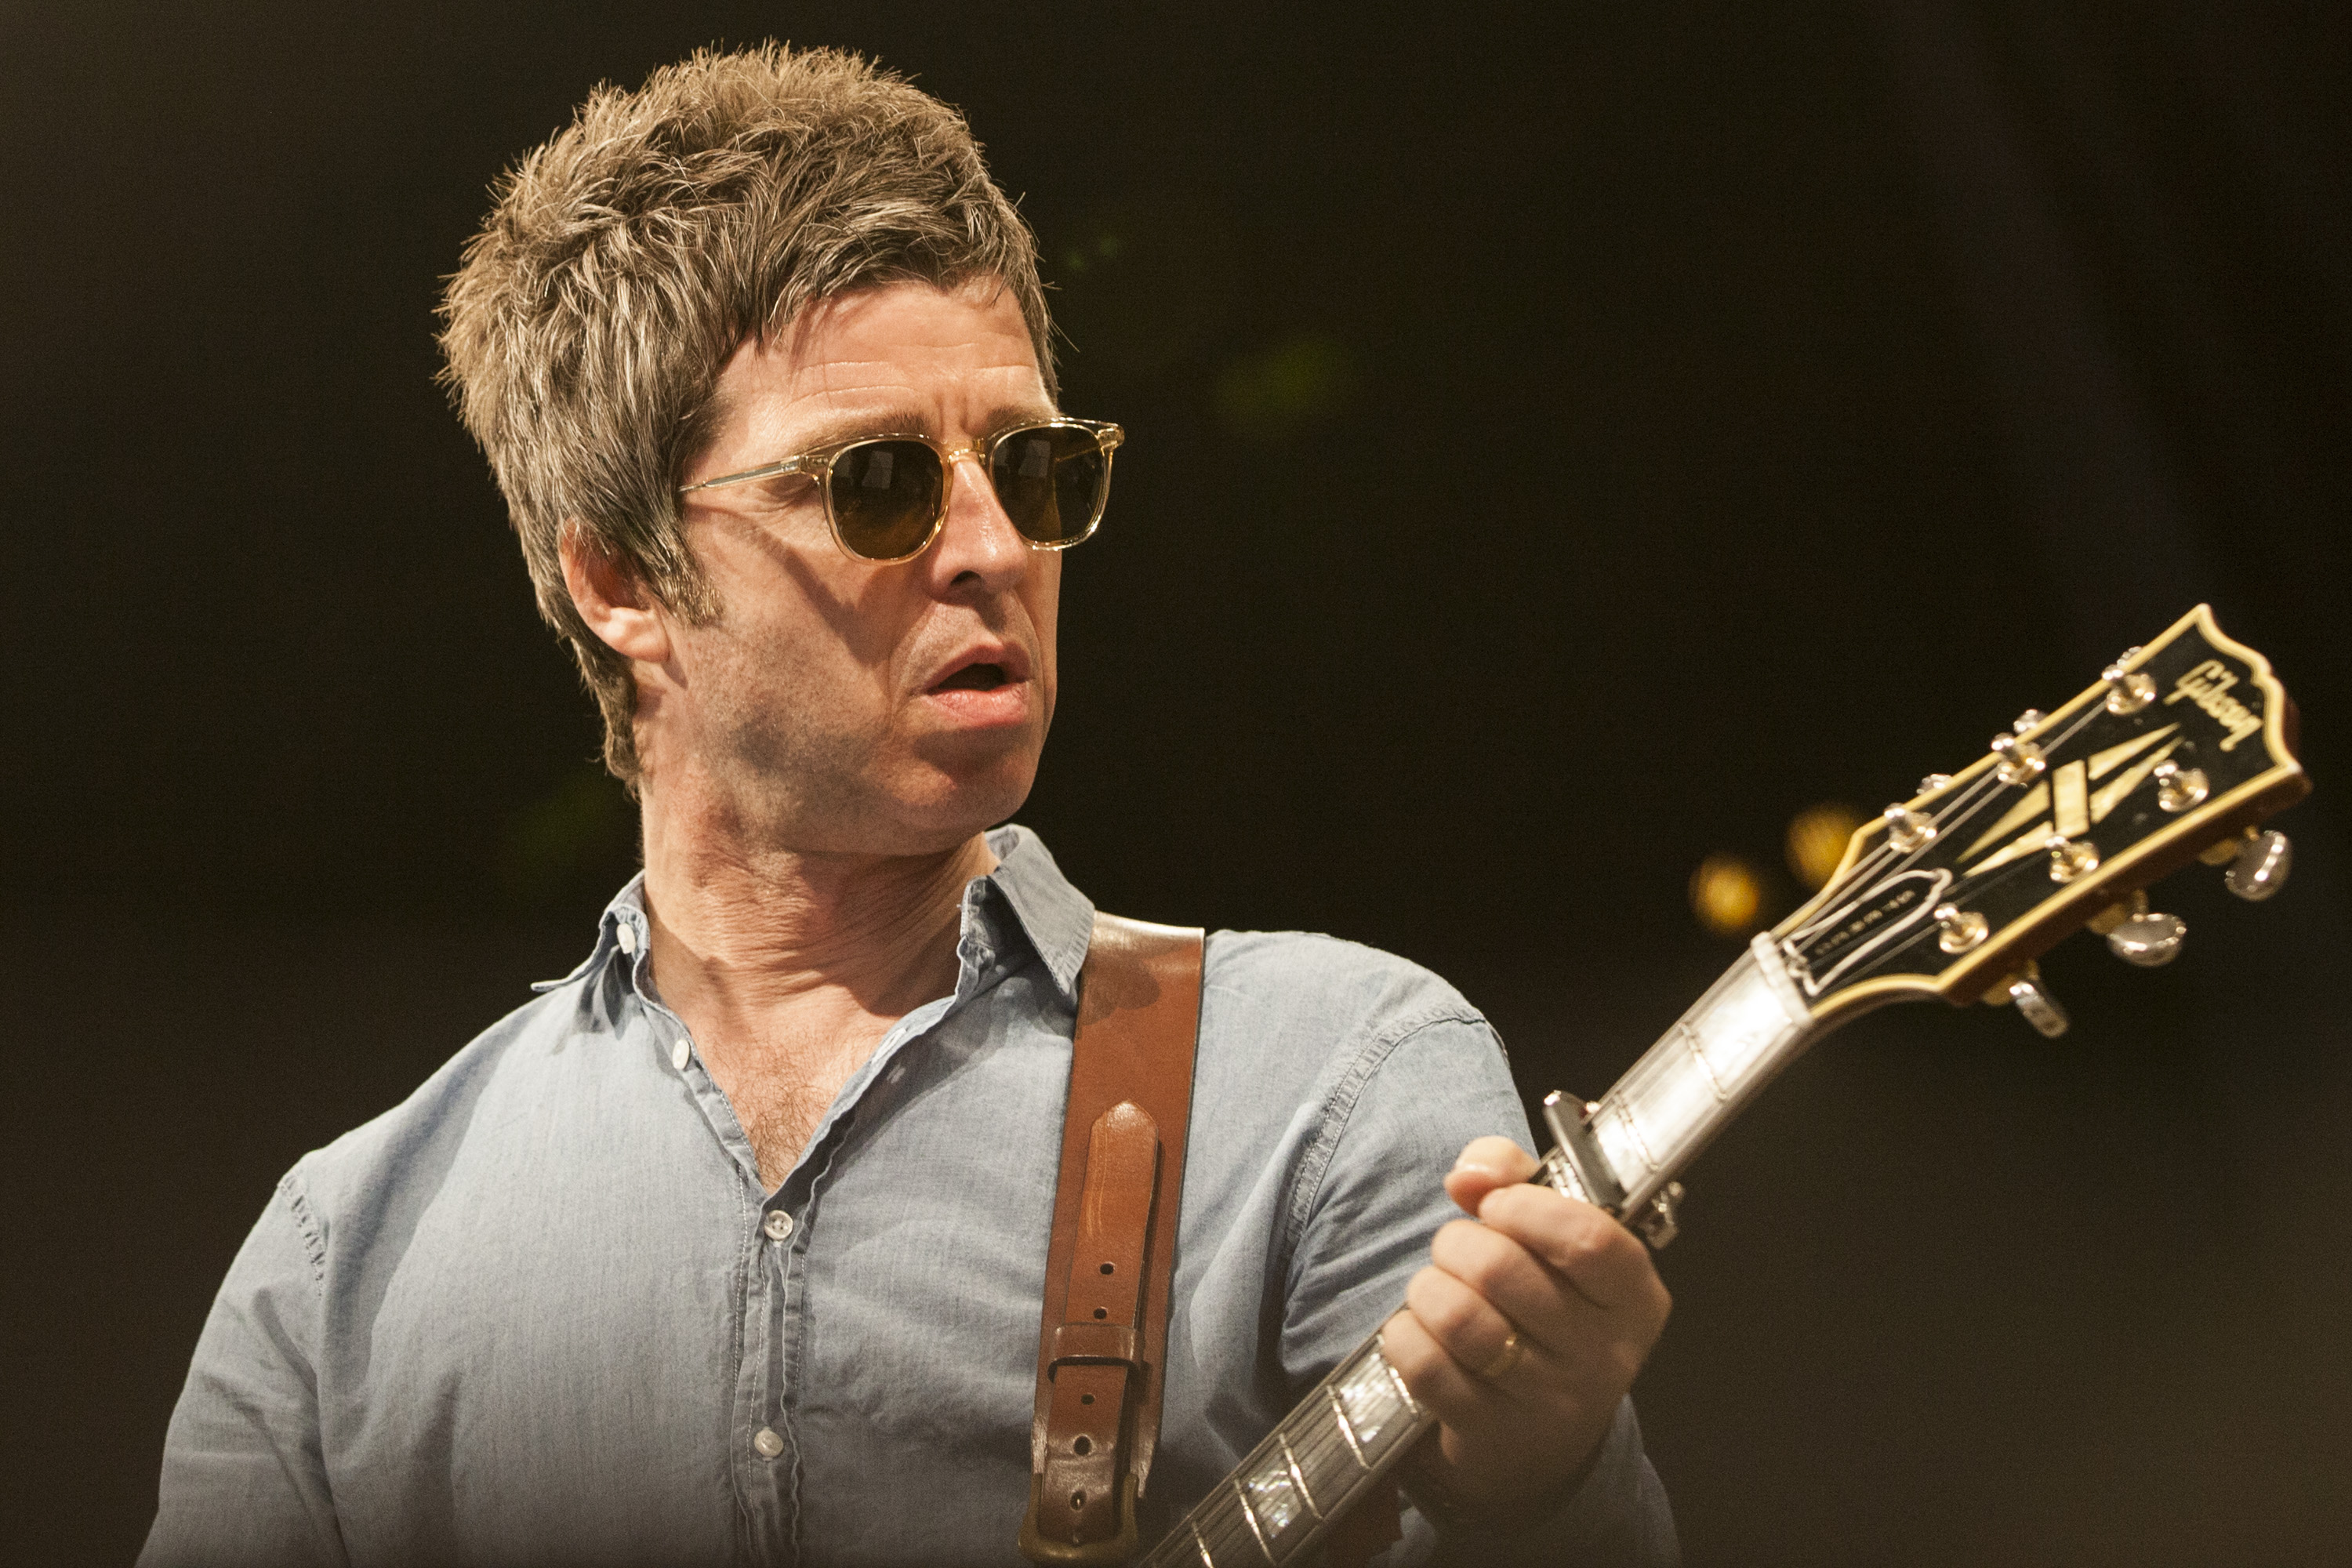 ROSKILDE, DENMARK - JULY 01:  Noel Gallagher performs at Roskilde Festival  on July 1, 2015 in Roskilde, Denmark.  (Photo by